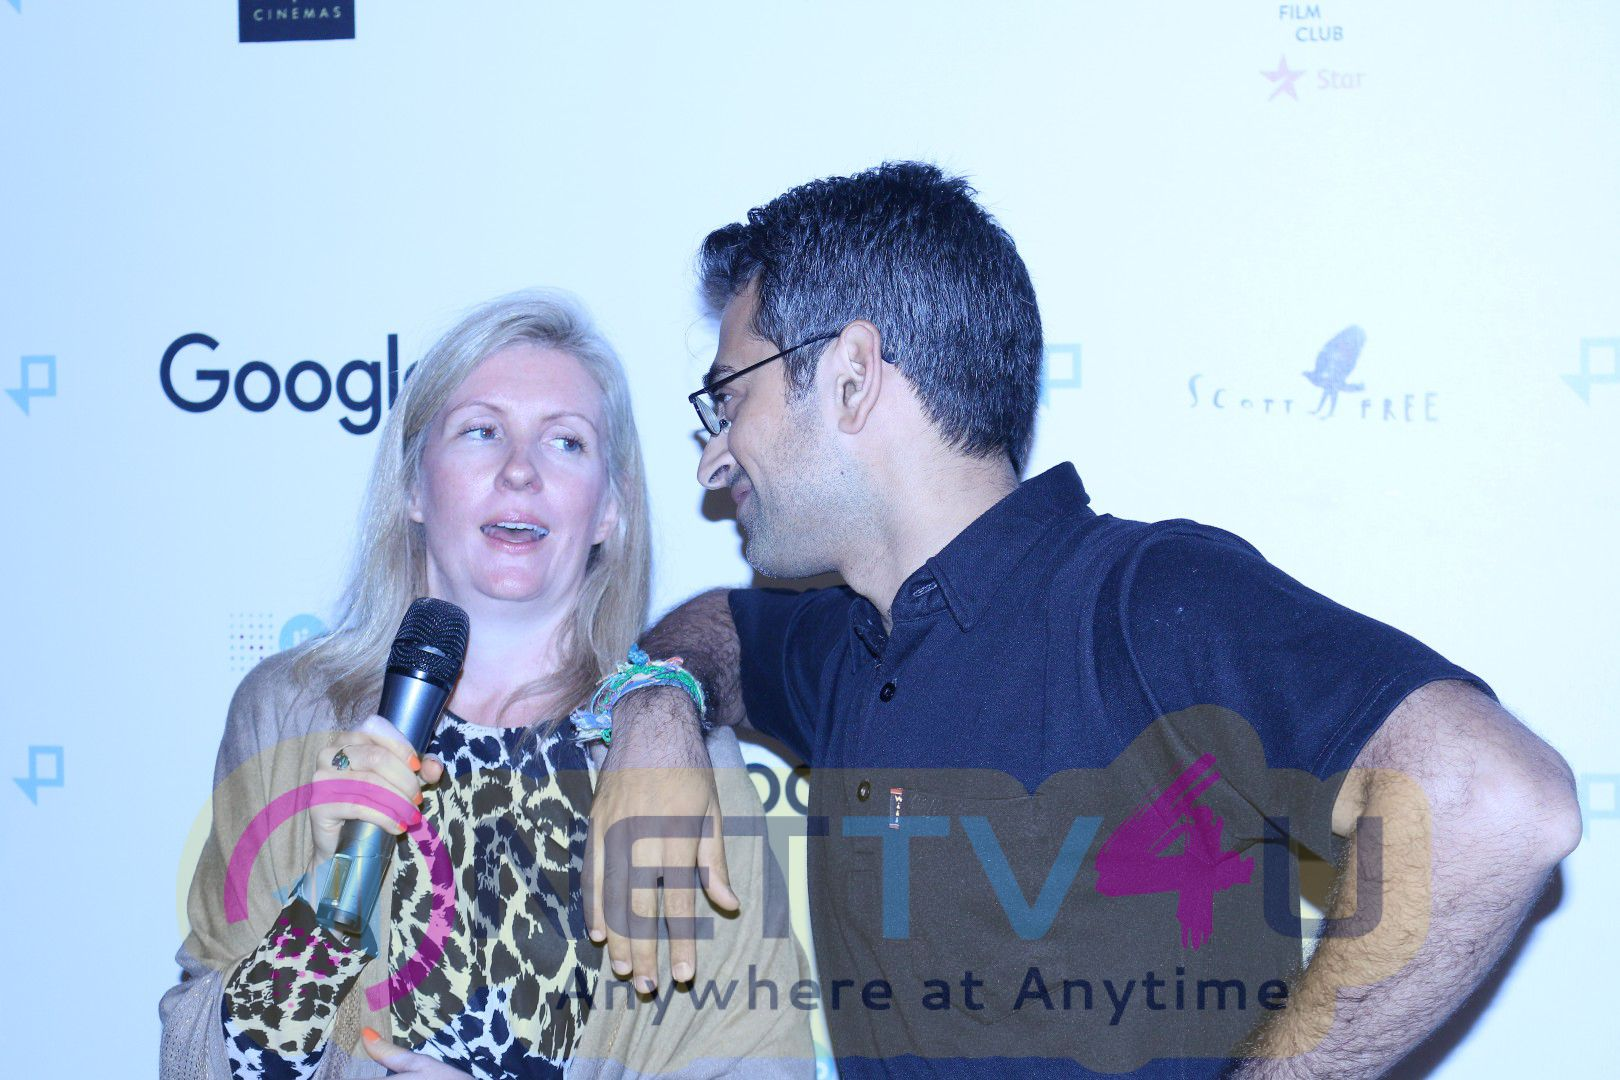 Photos Of India Premiere Of Google 1st Crowdsourced Footage Film With Anurag Kashyap Hindi Gallery